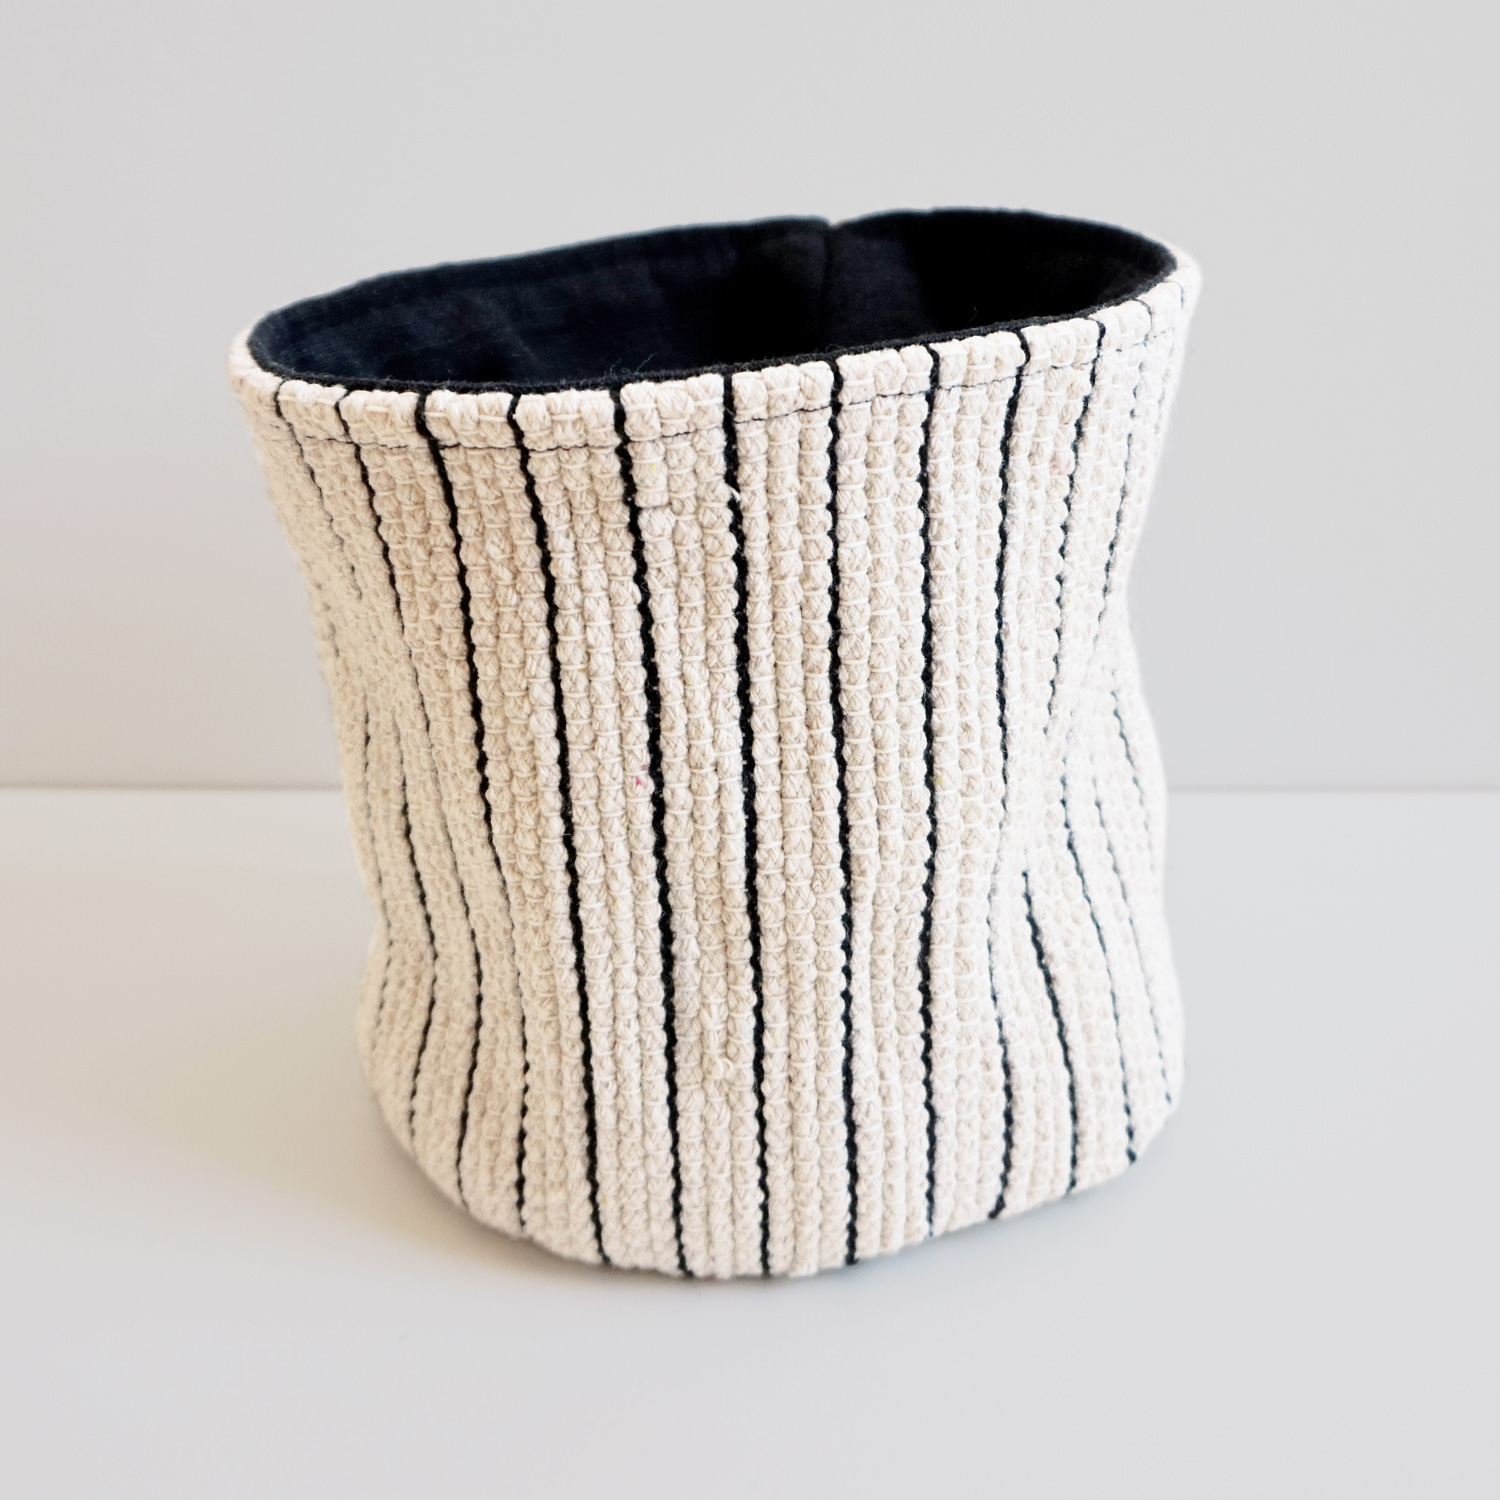 A small handy woven basket to keep all the little knicknacks around your house organized.